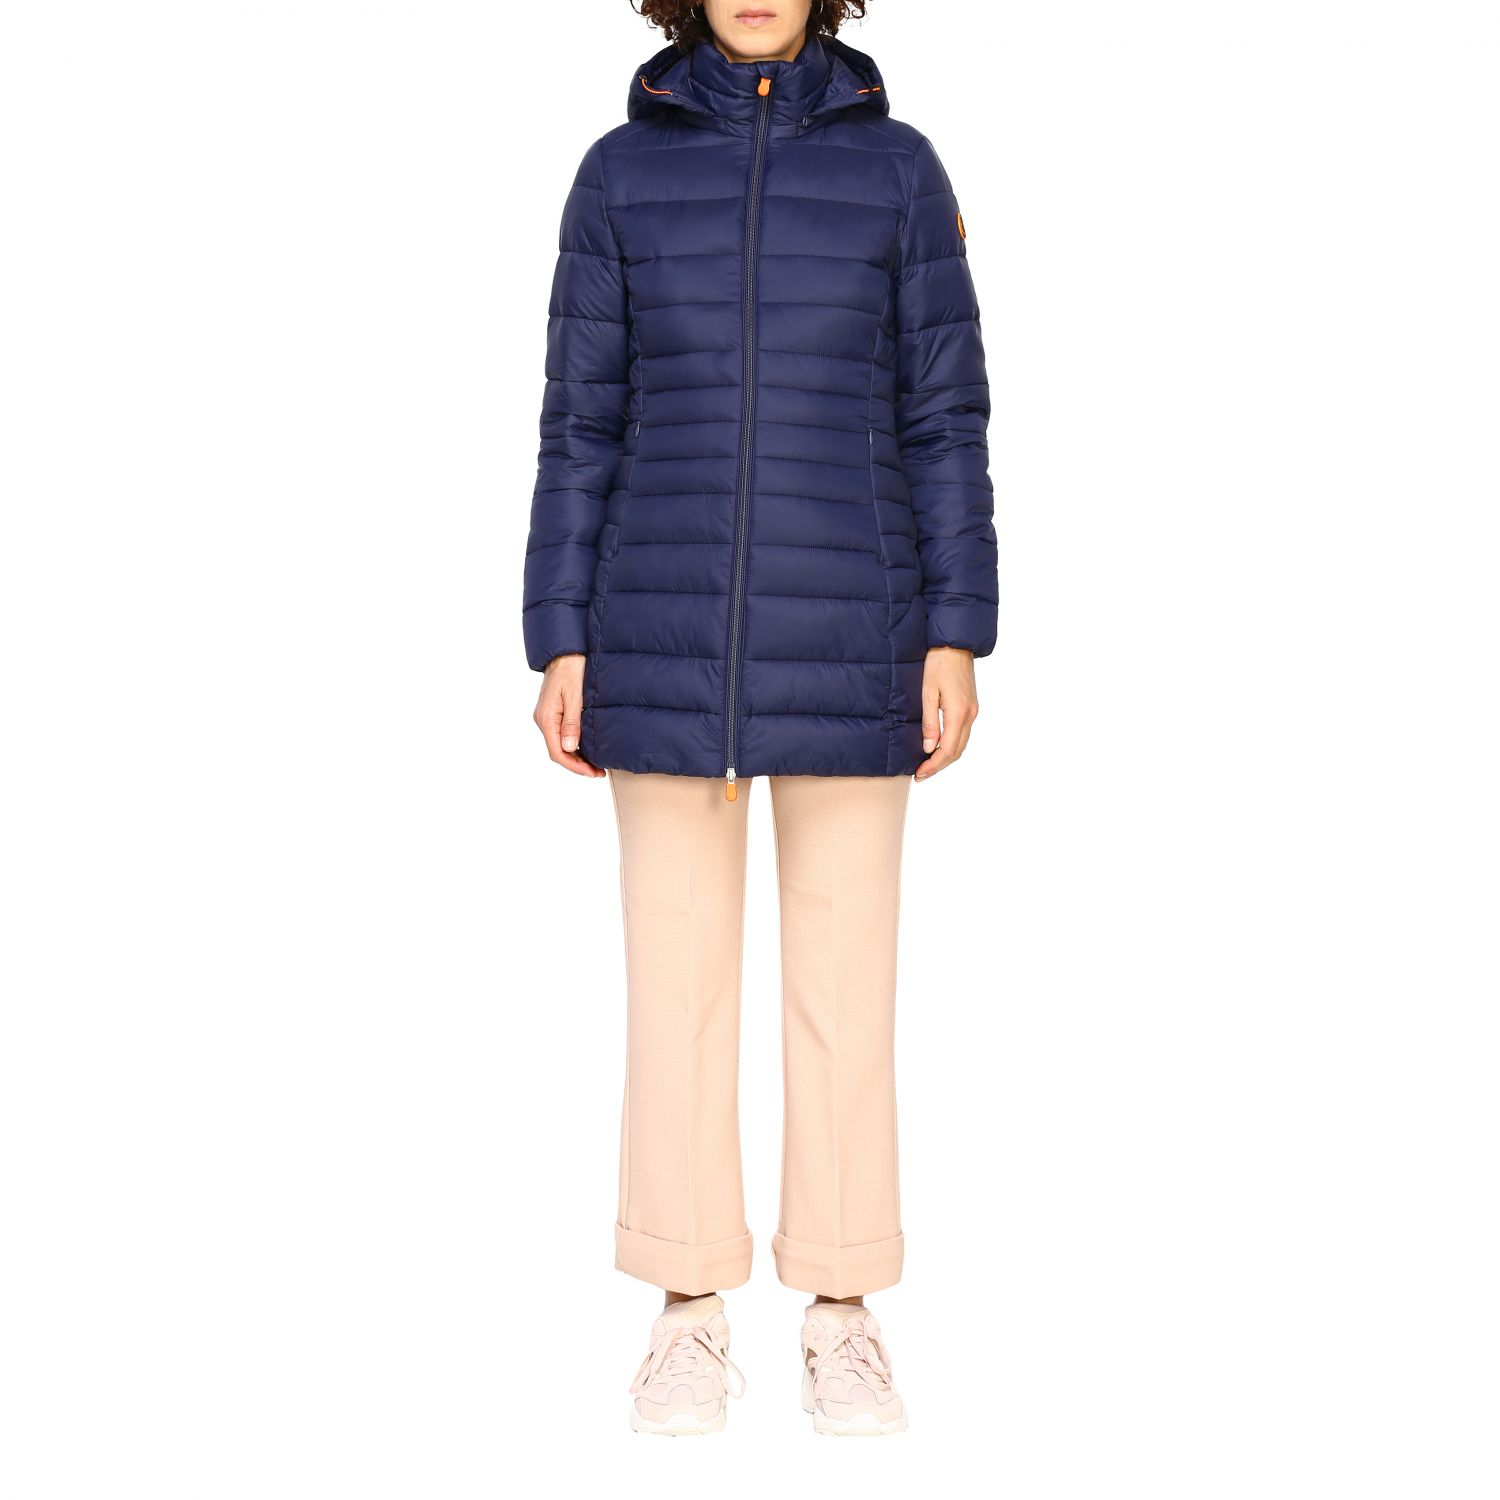 Giacca Save The Duck: Cappotto donna Save The Duck blue navy 1